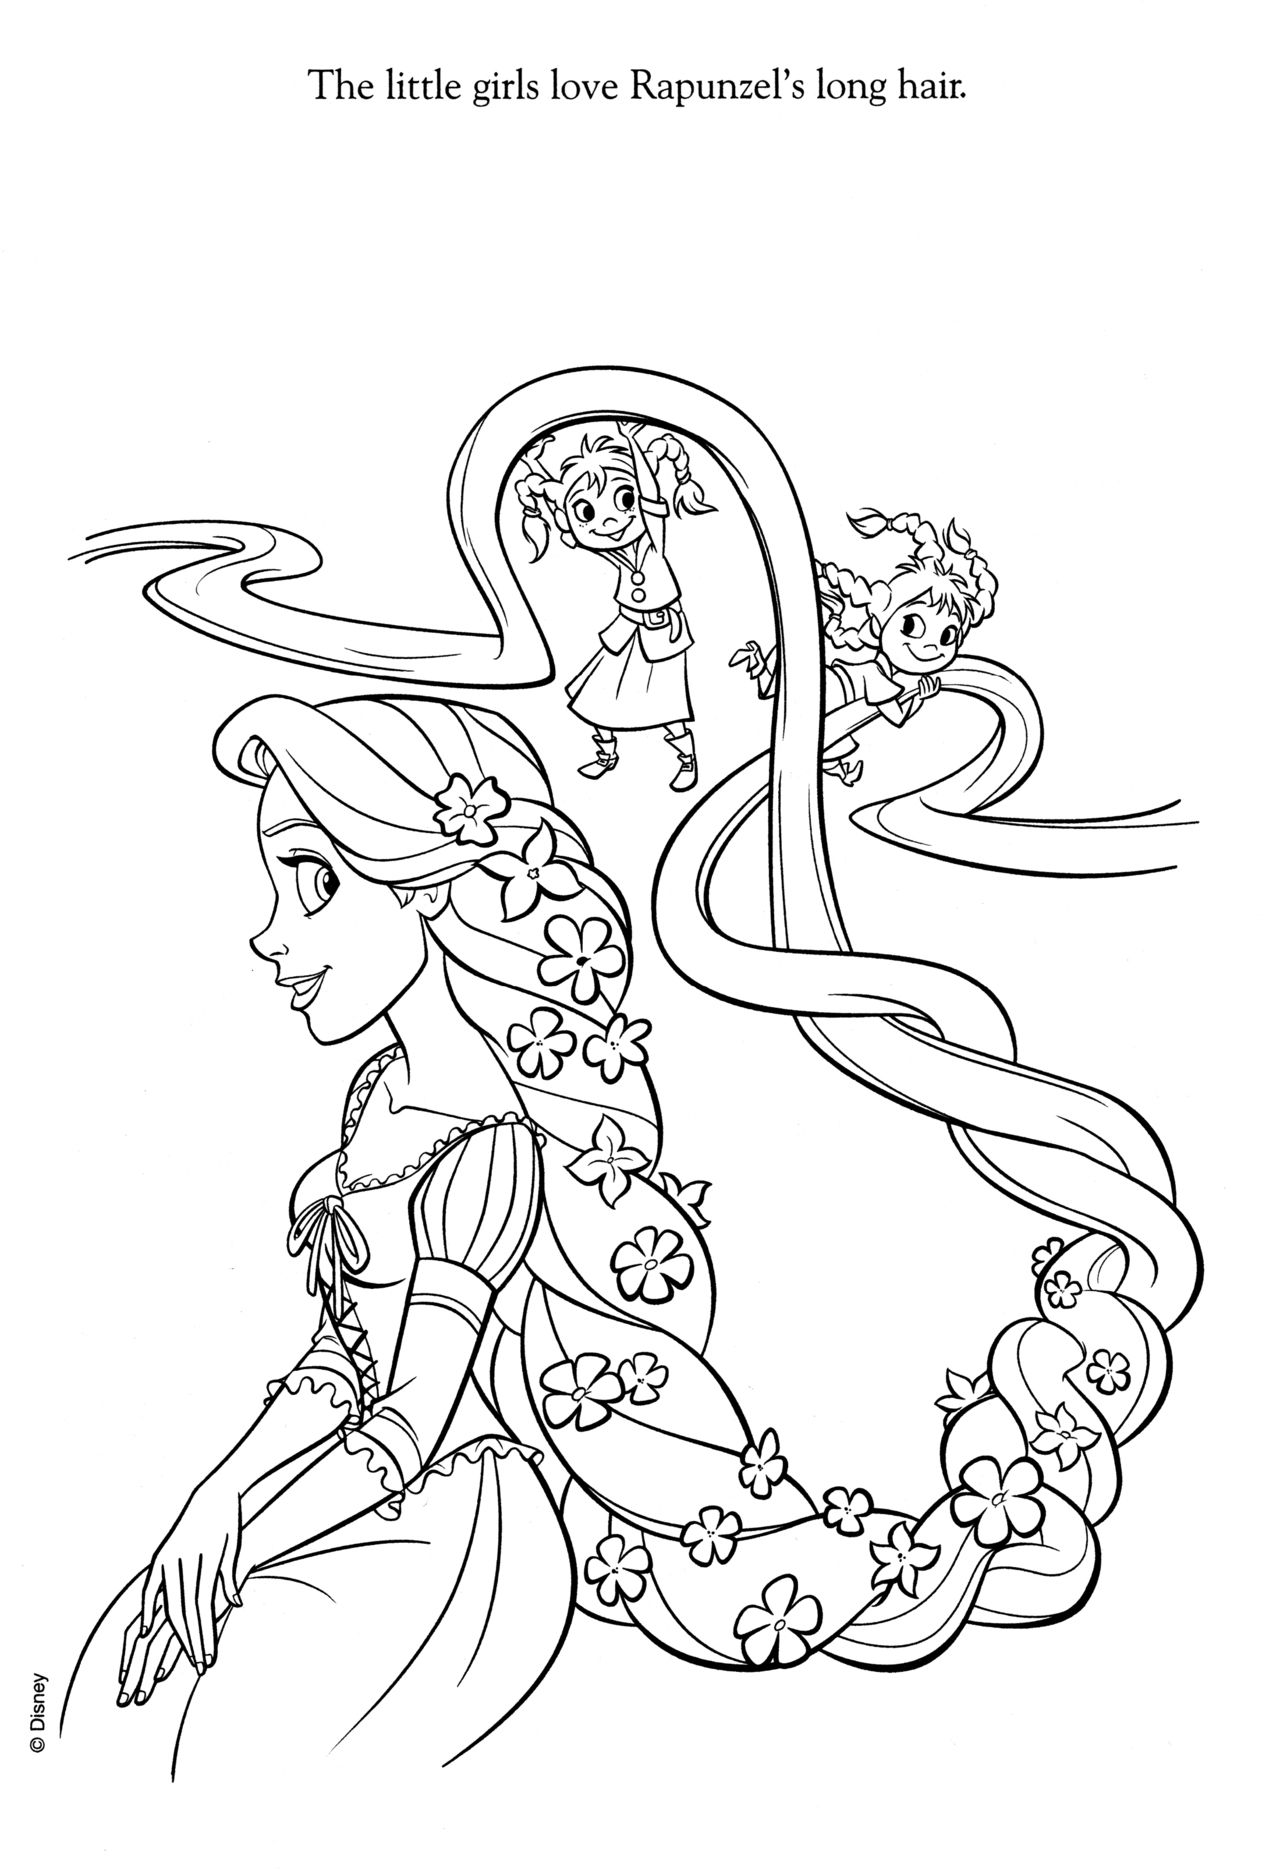 The Best Disney Tangled Rapunzel Coloring Pages | Disney tangled ...